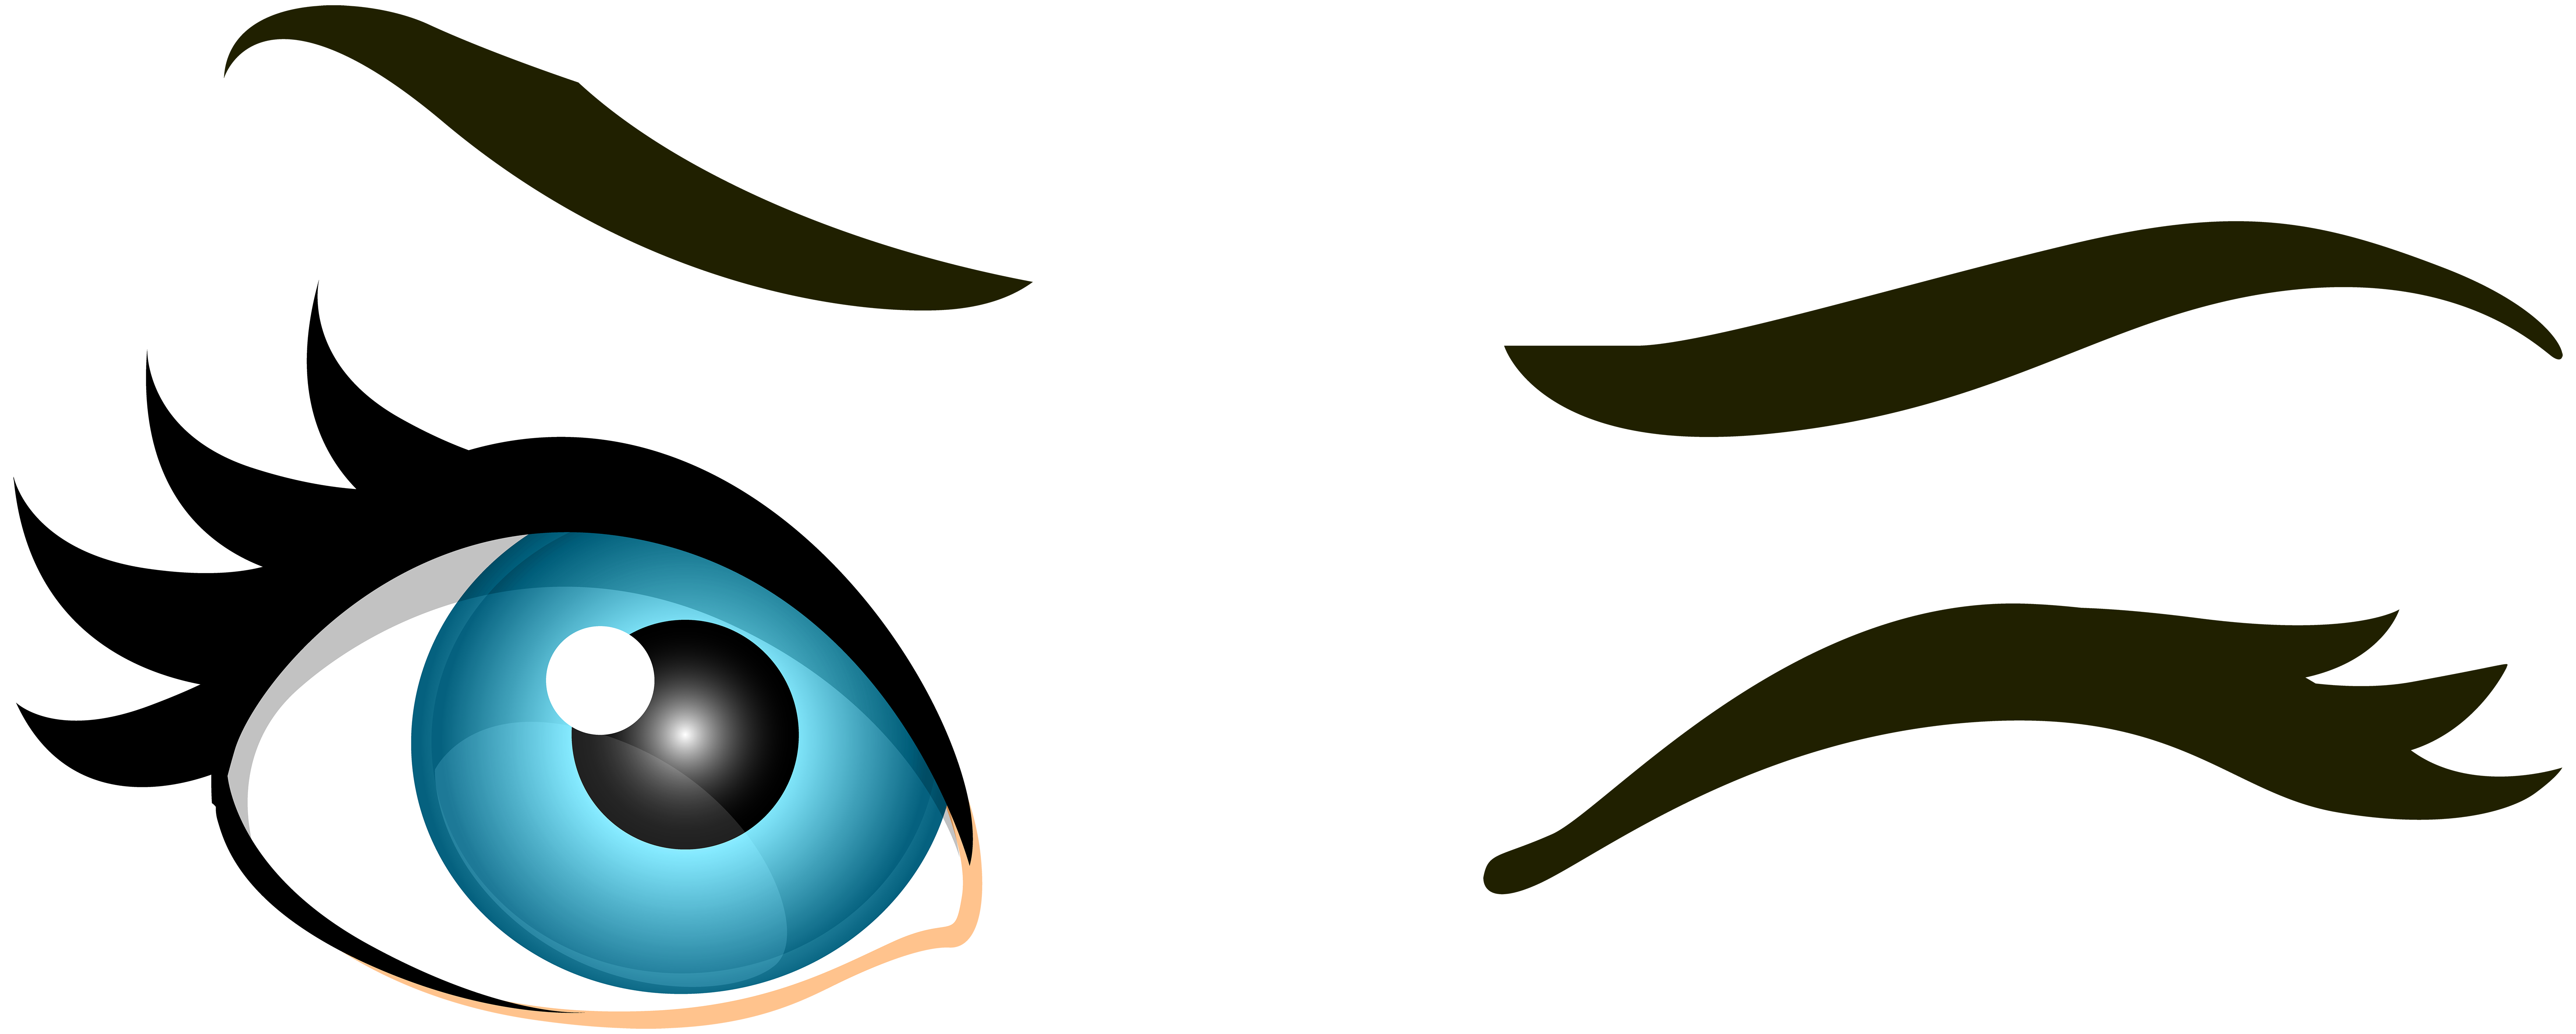 Winking fish clipart picture transparent library Png Winking Eye & Free Winking Eye.png Transparent Images #25173 - PNGio picture transparent library